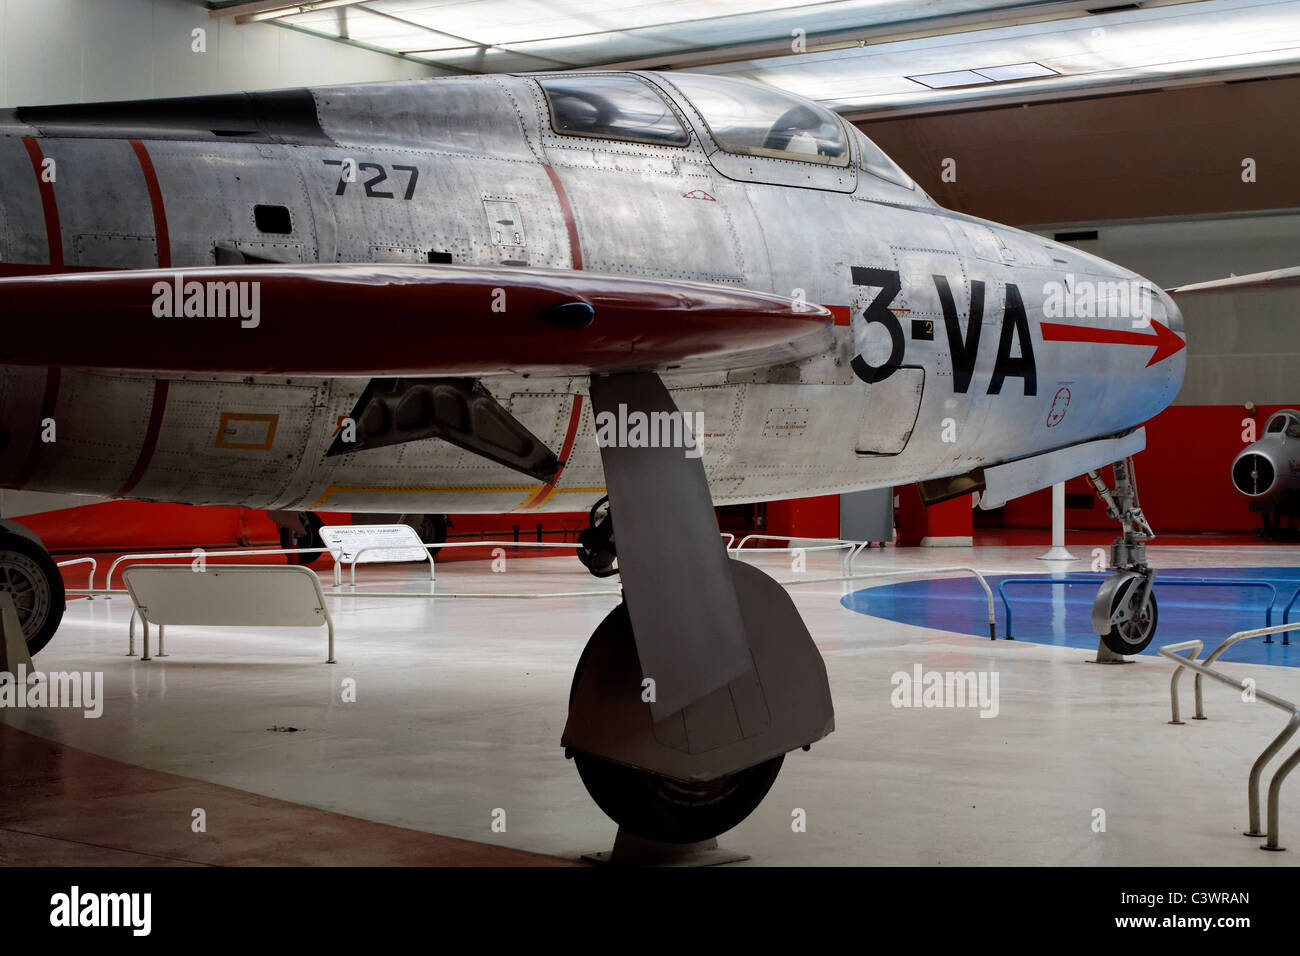 General Motors F-84F Thunderstreak, French Air Force, Air and Space Museum, France - Stock Image